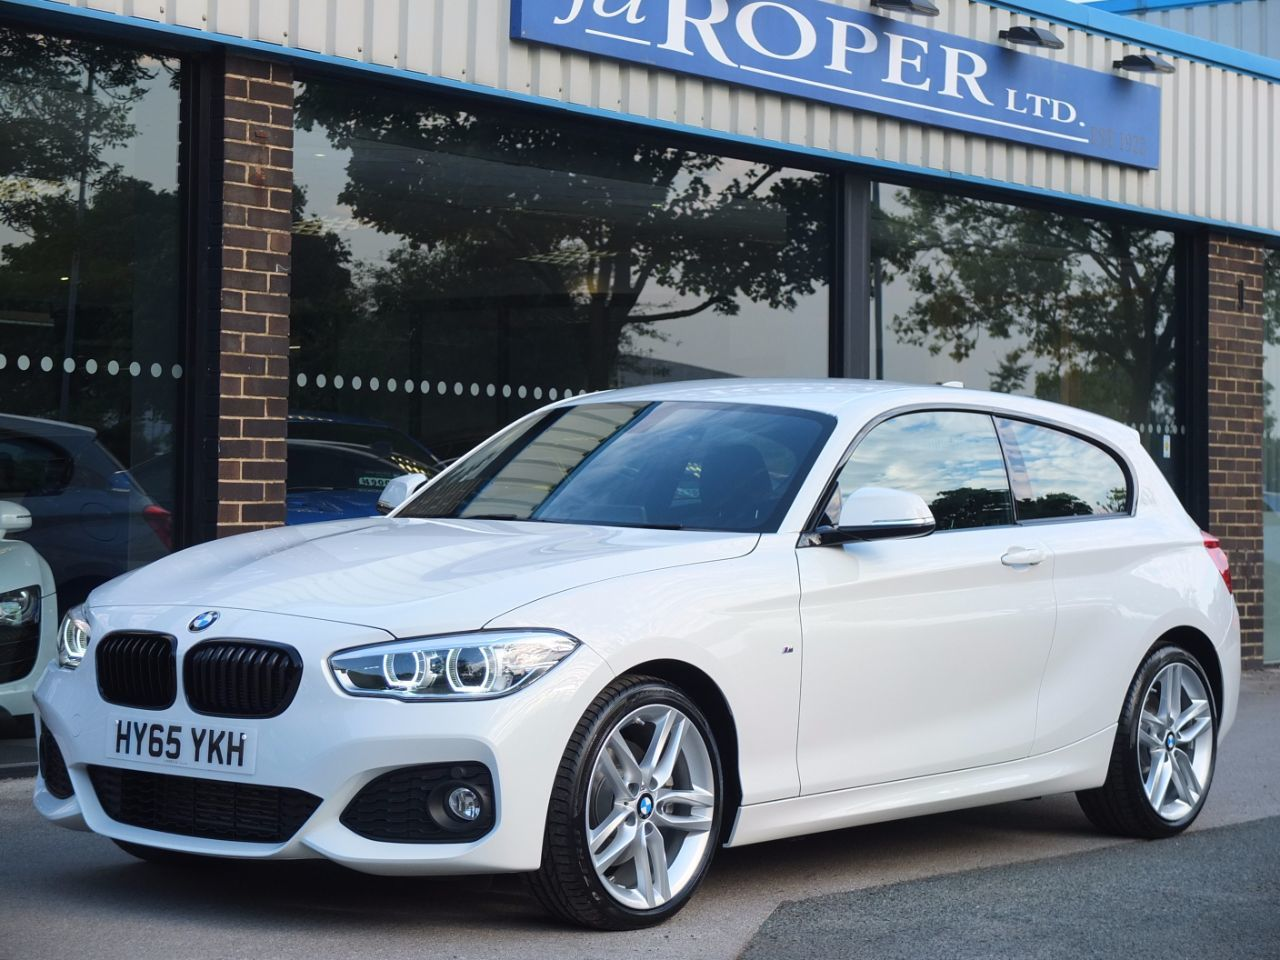 BMW 1 Series 2.0 125d M Sport 3 door Auto +++Spec Hatchback Diesel Alpine WhiteBMW 1 Series 2.0 125d M Sport 3 door Auto +++Spec Hatchback Diesel Alpine White at fa Roper Ltd Bradford